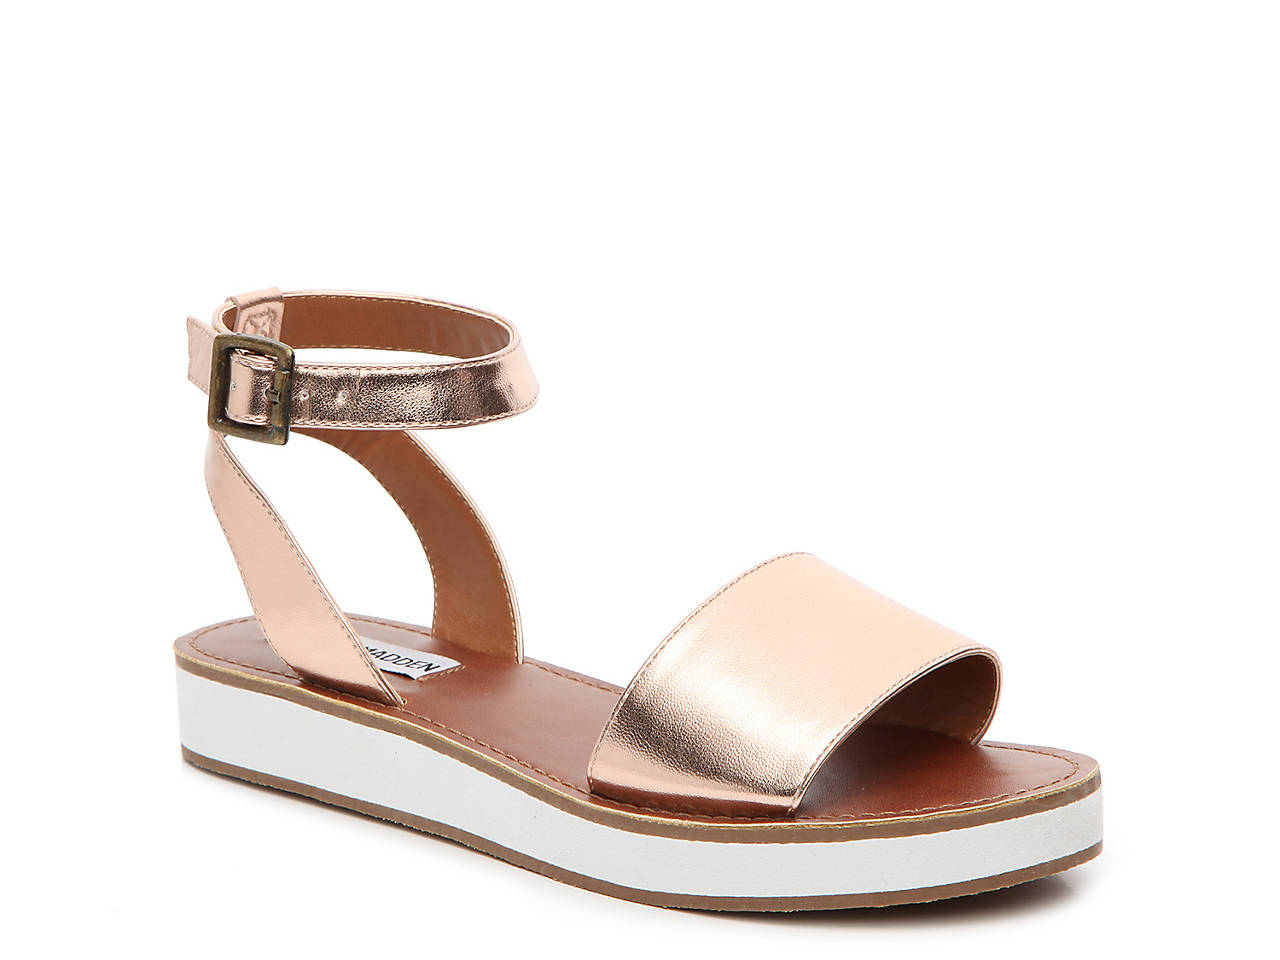 Steve Madden Miley Wedge Sandal Women's Shoes | DSW